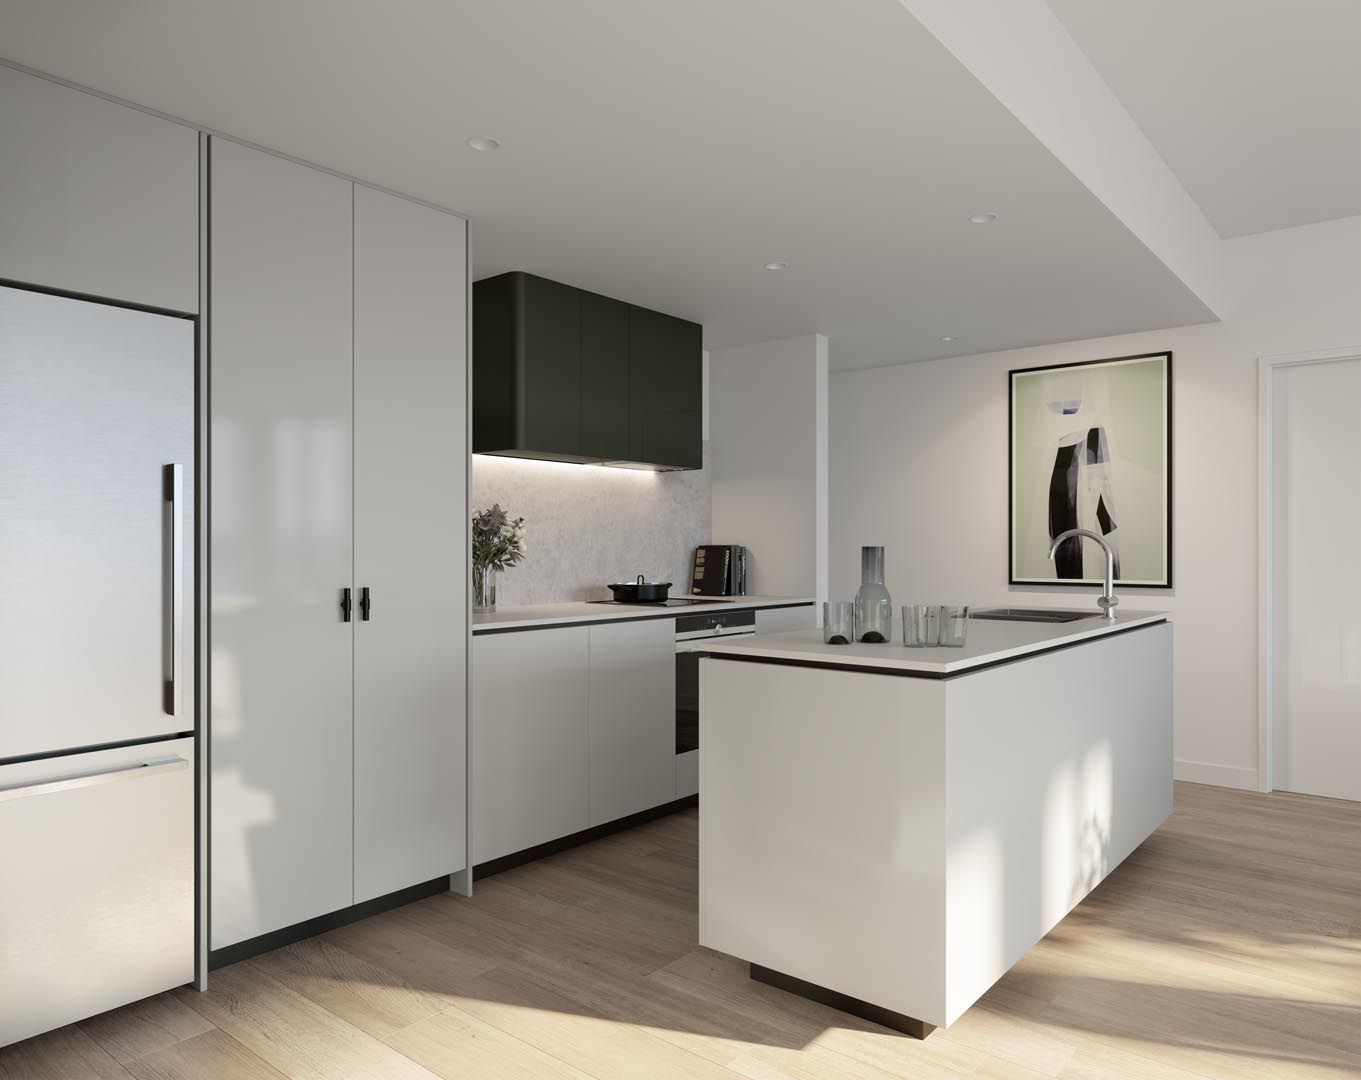 The Capitol Residences - Canberra | Kitchen inspirations ...